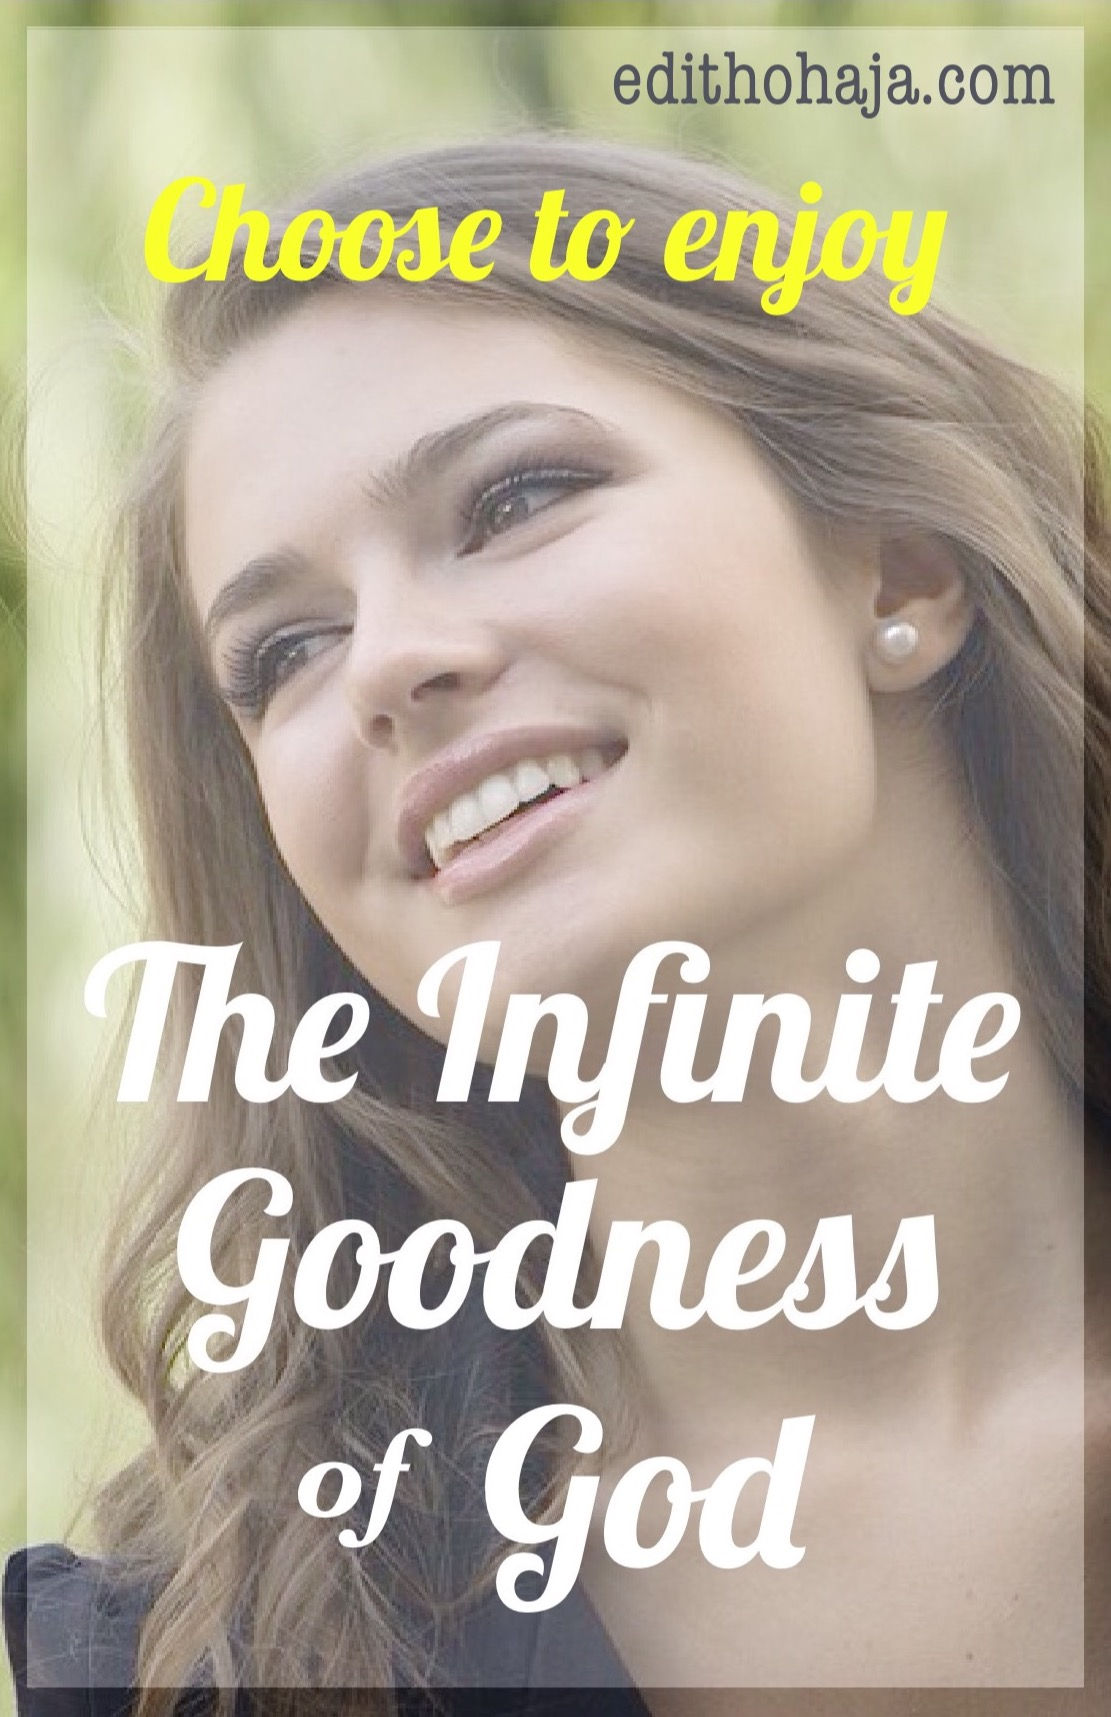 CHOOSE TO ENJOY THE INFINITE GOODNESS OF GOD